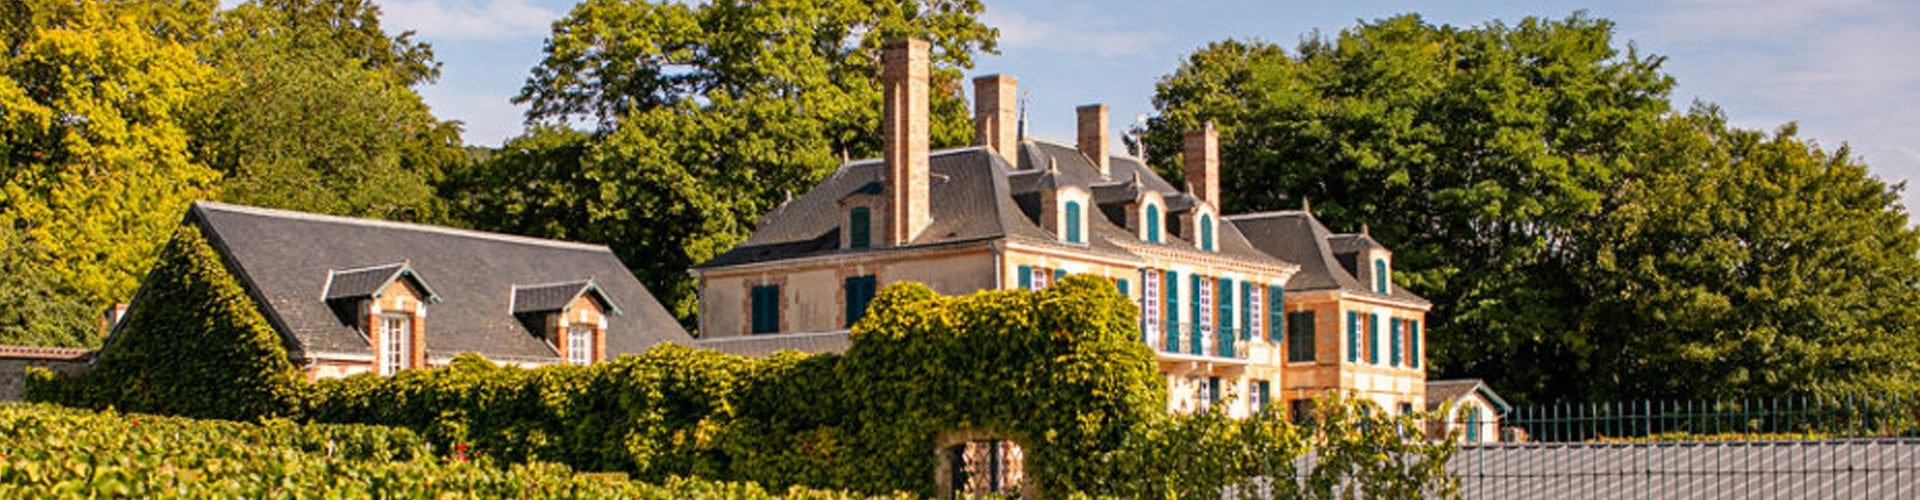 The house of Champagne Taittinger amidst vineyards